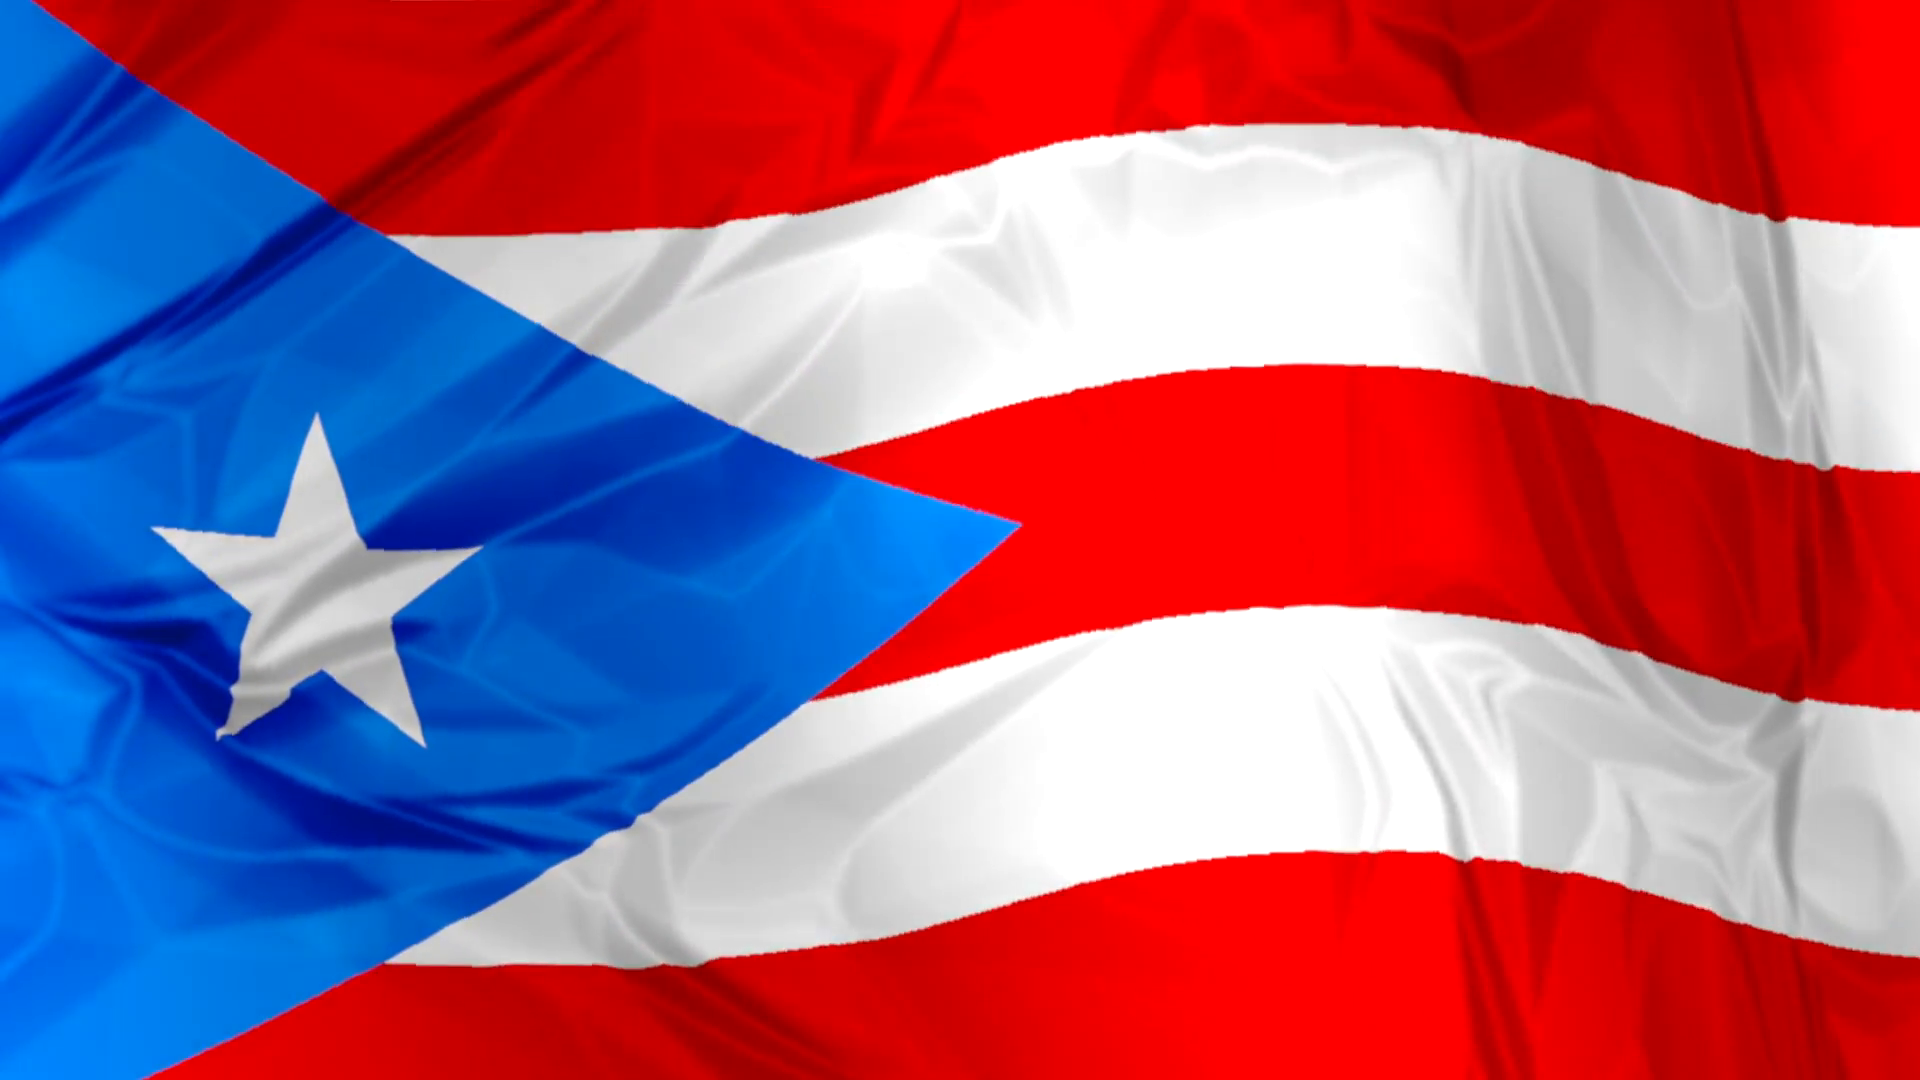 3D waving Puerto Rico flag background red, blue and white colors, Latin  America Caribbean Motion Background.